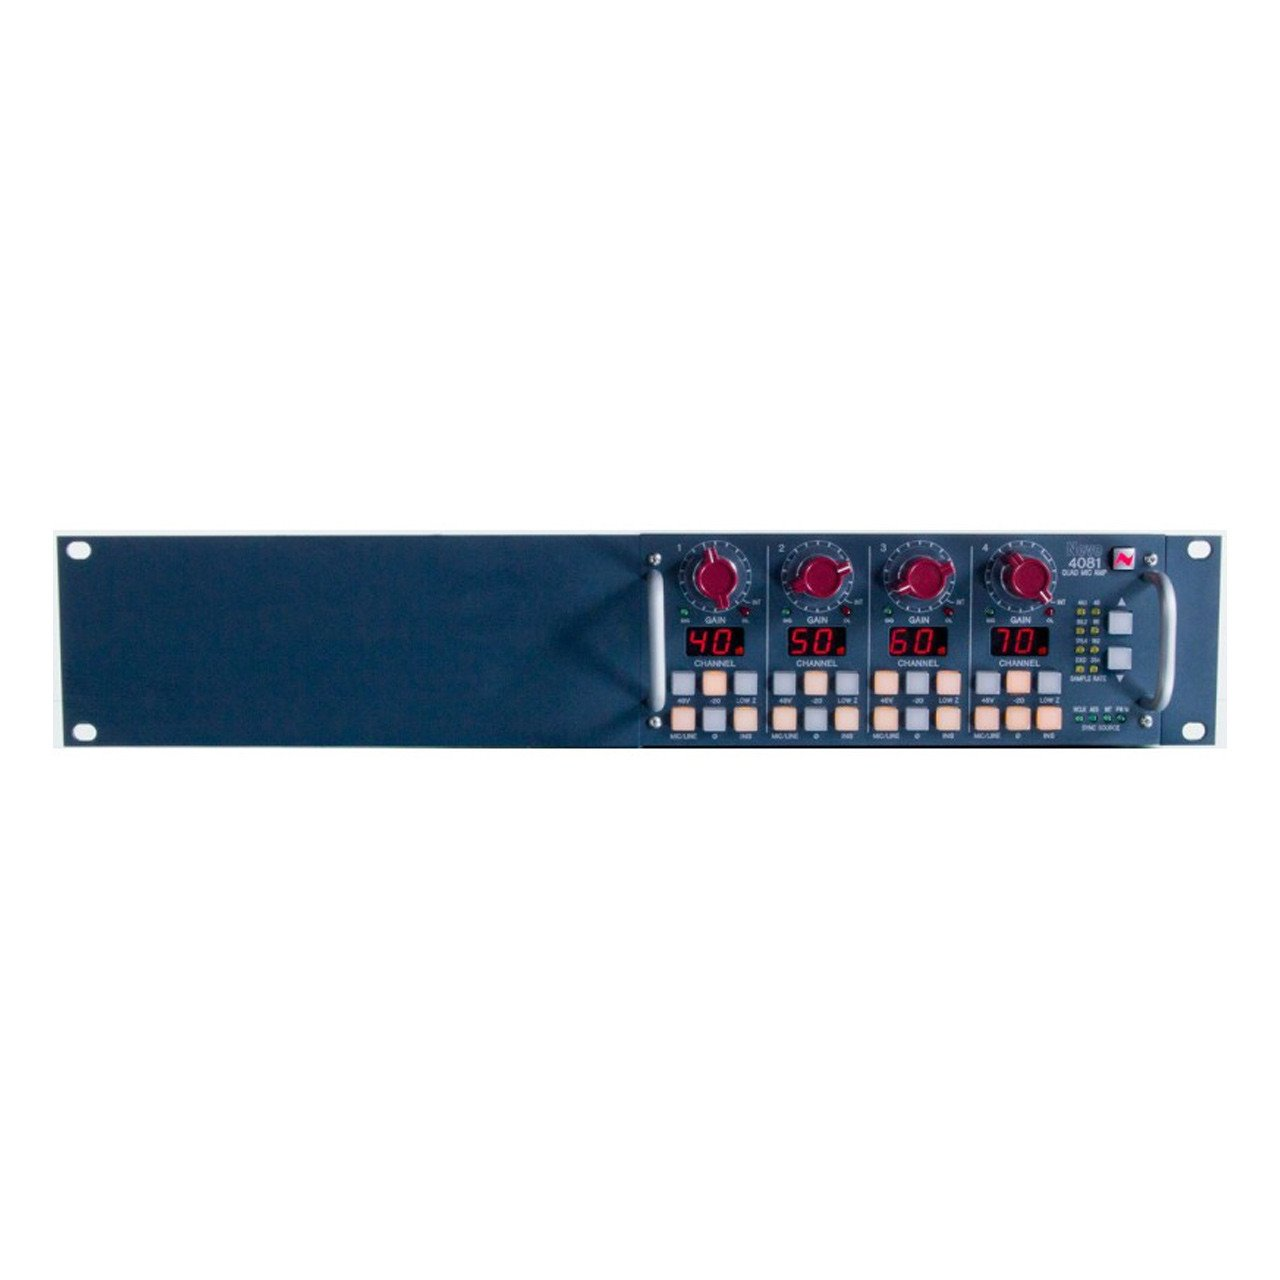 Outboard Accessories - Neve AMS 4081 Rackmount Kit